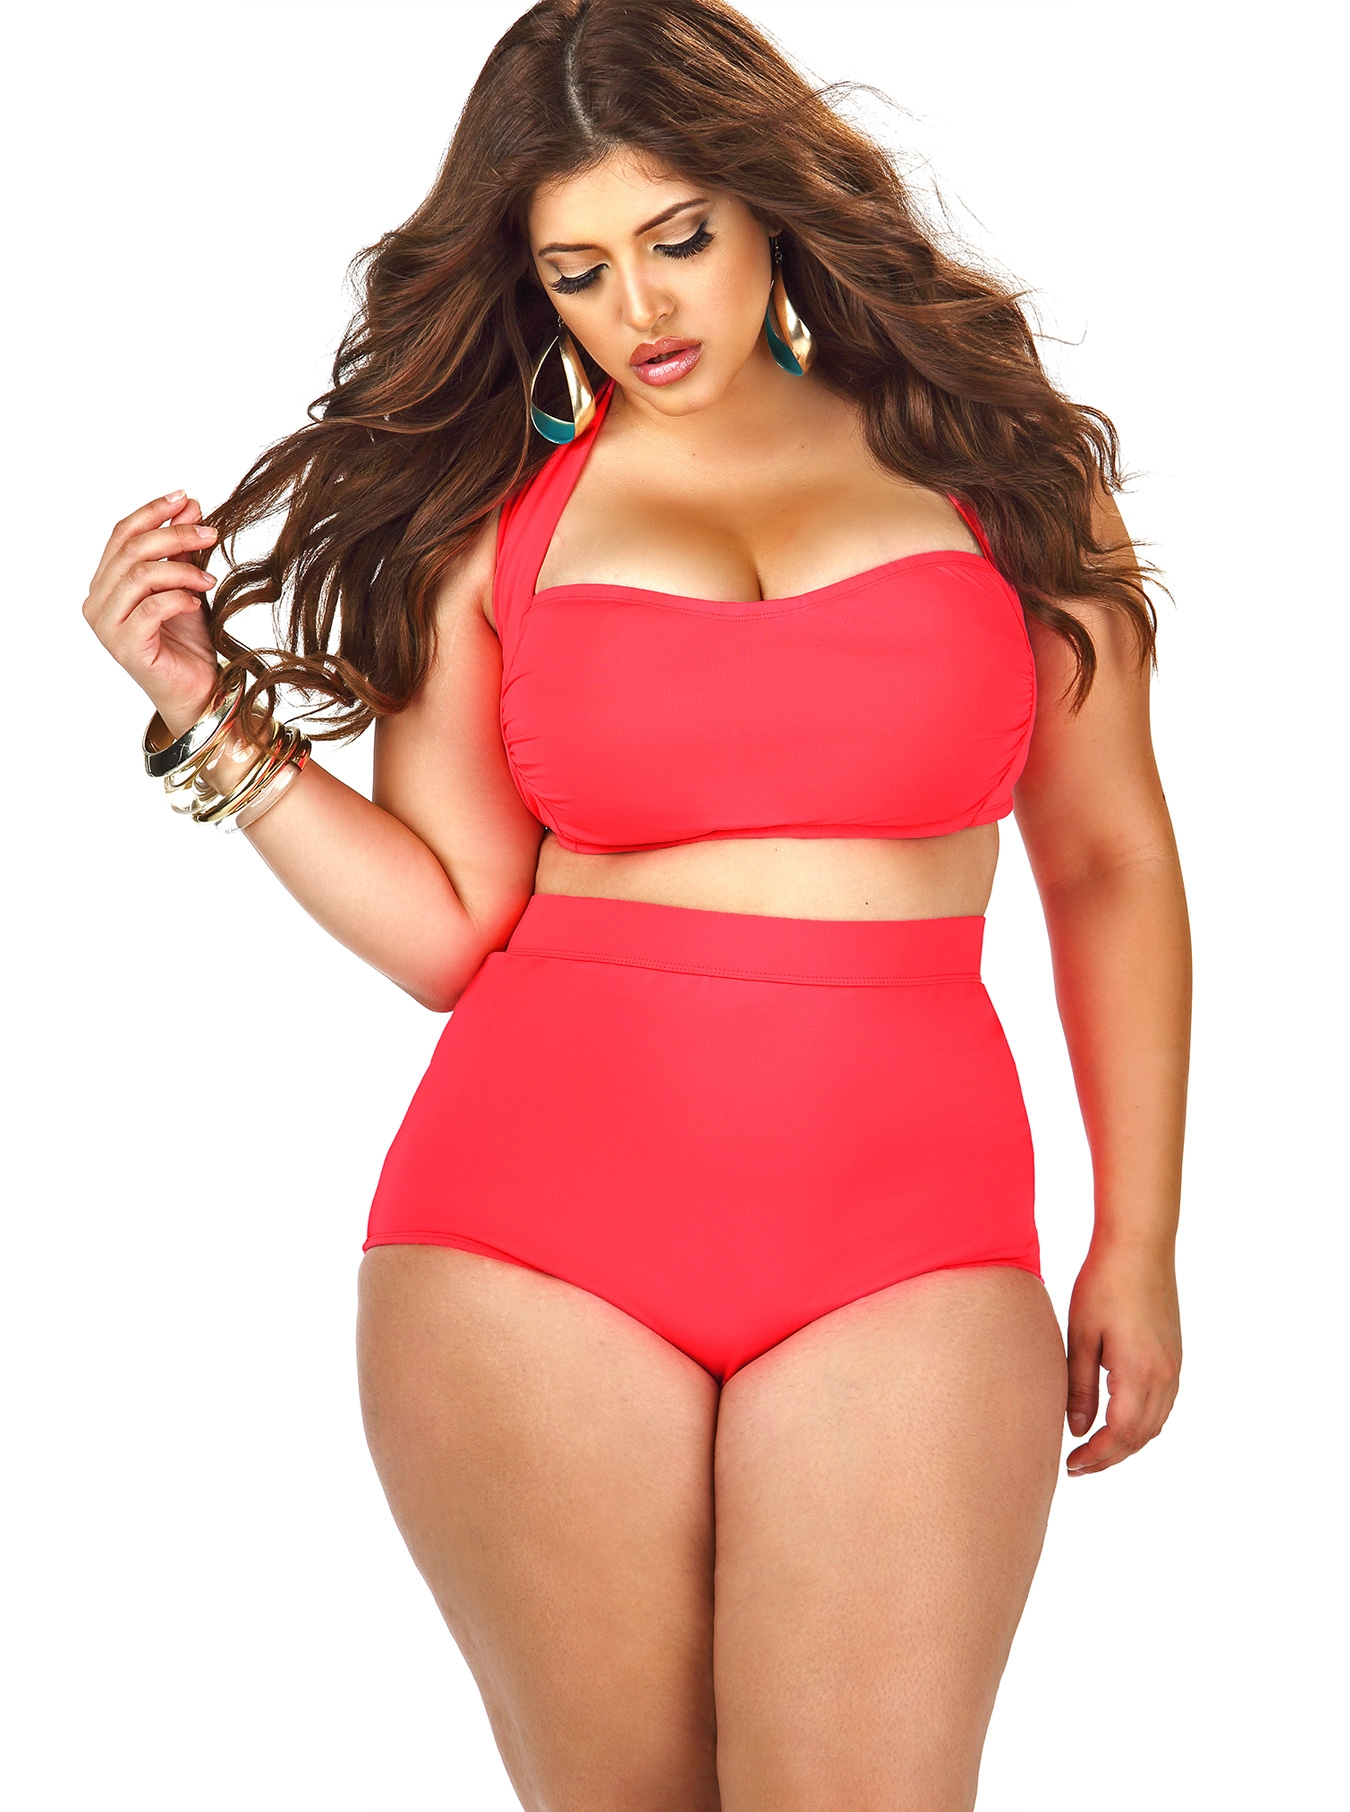 """""""SAO PAULO"""" HIGH-WAISTED PLUS SIZE BIKINI TOP WITH UNDERWIRE -CORAL REGULAR PRICE: $88.00 SPECIAL PRICE: $52.80"""